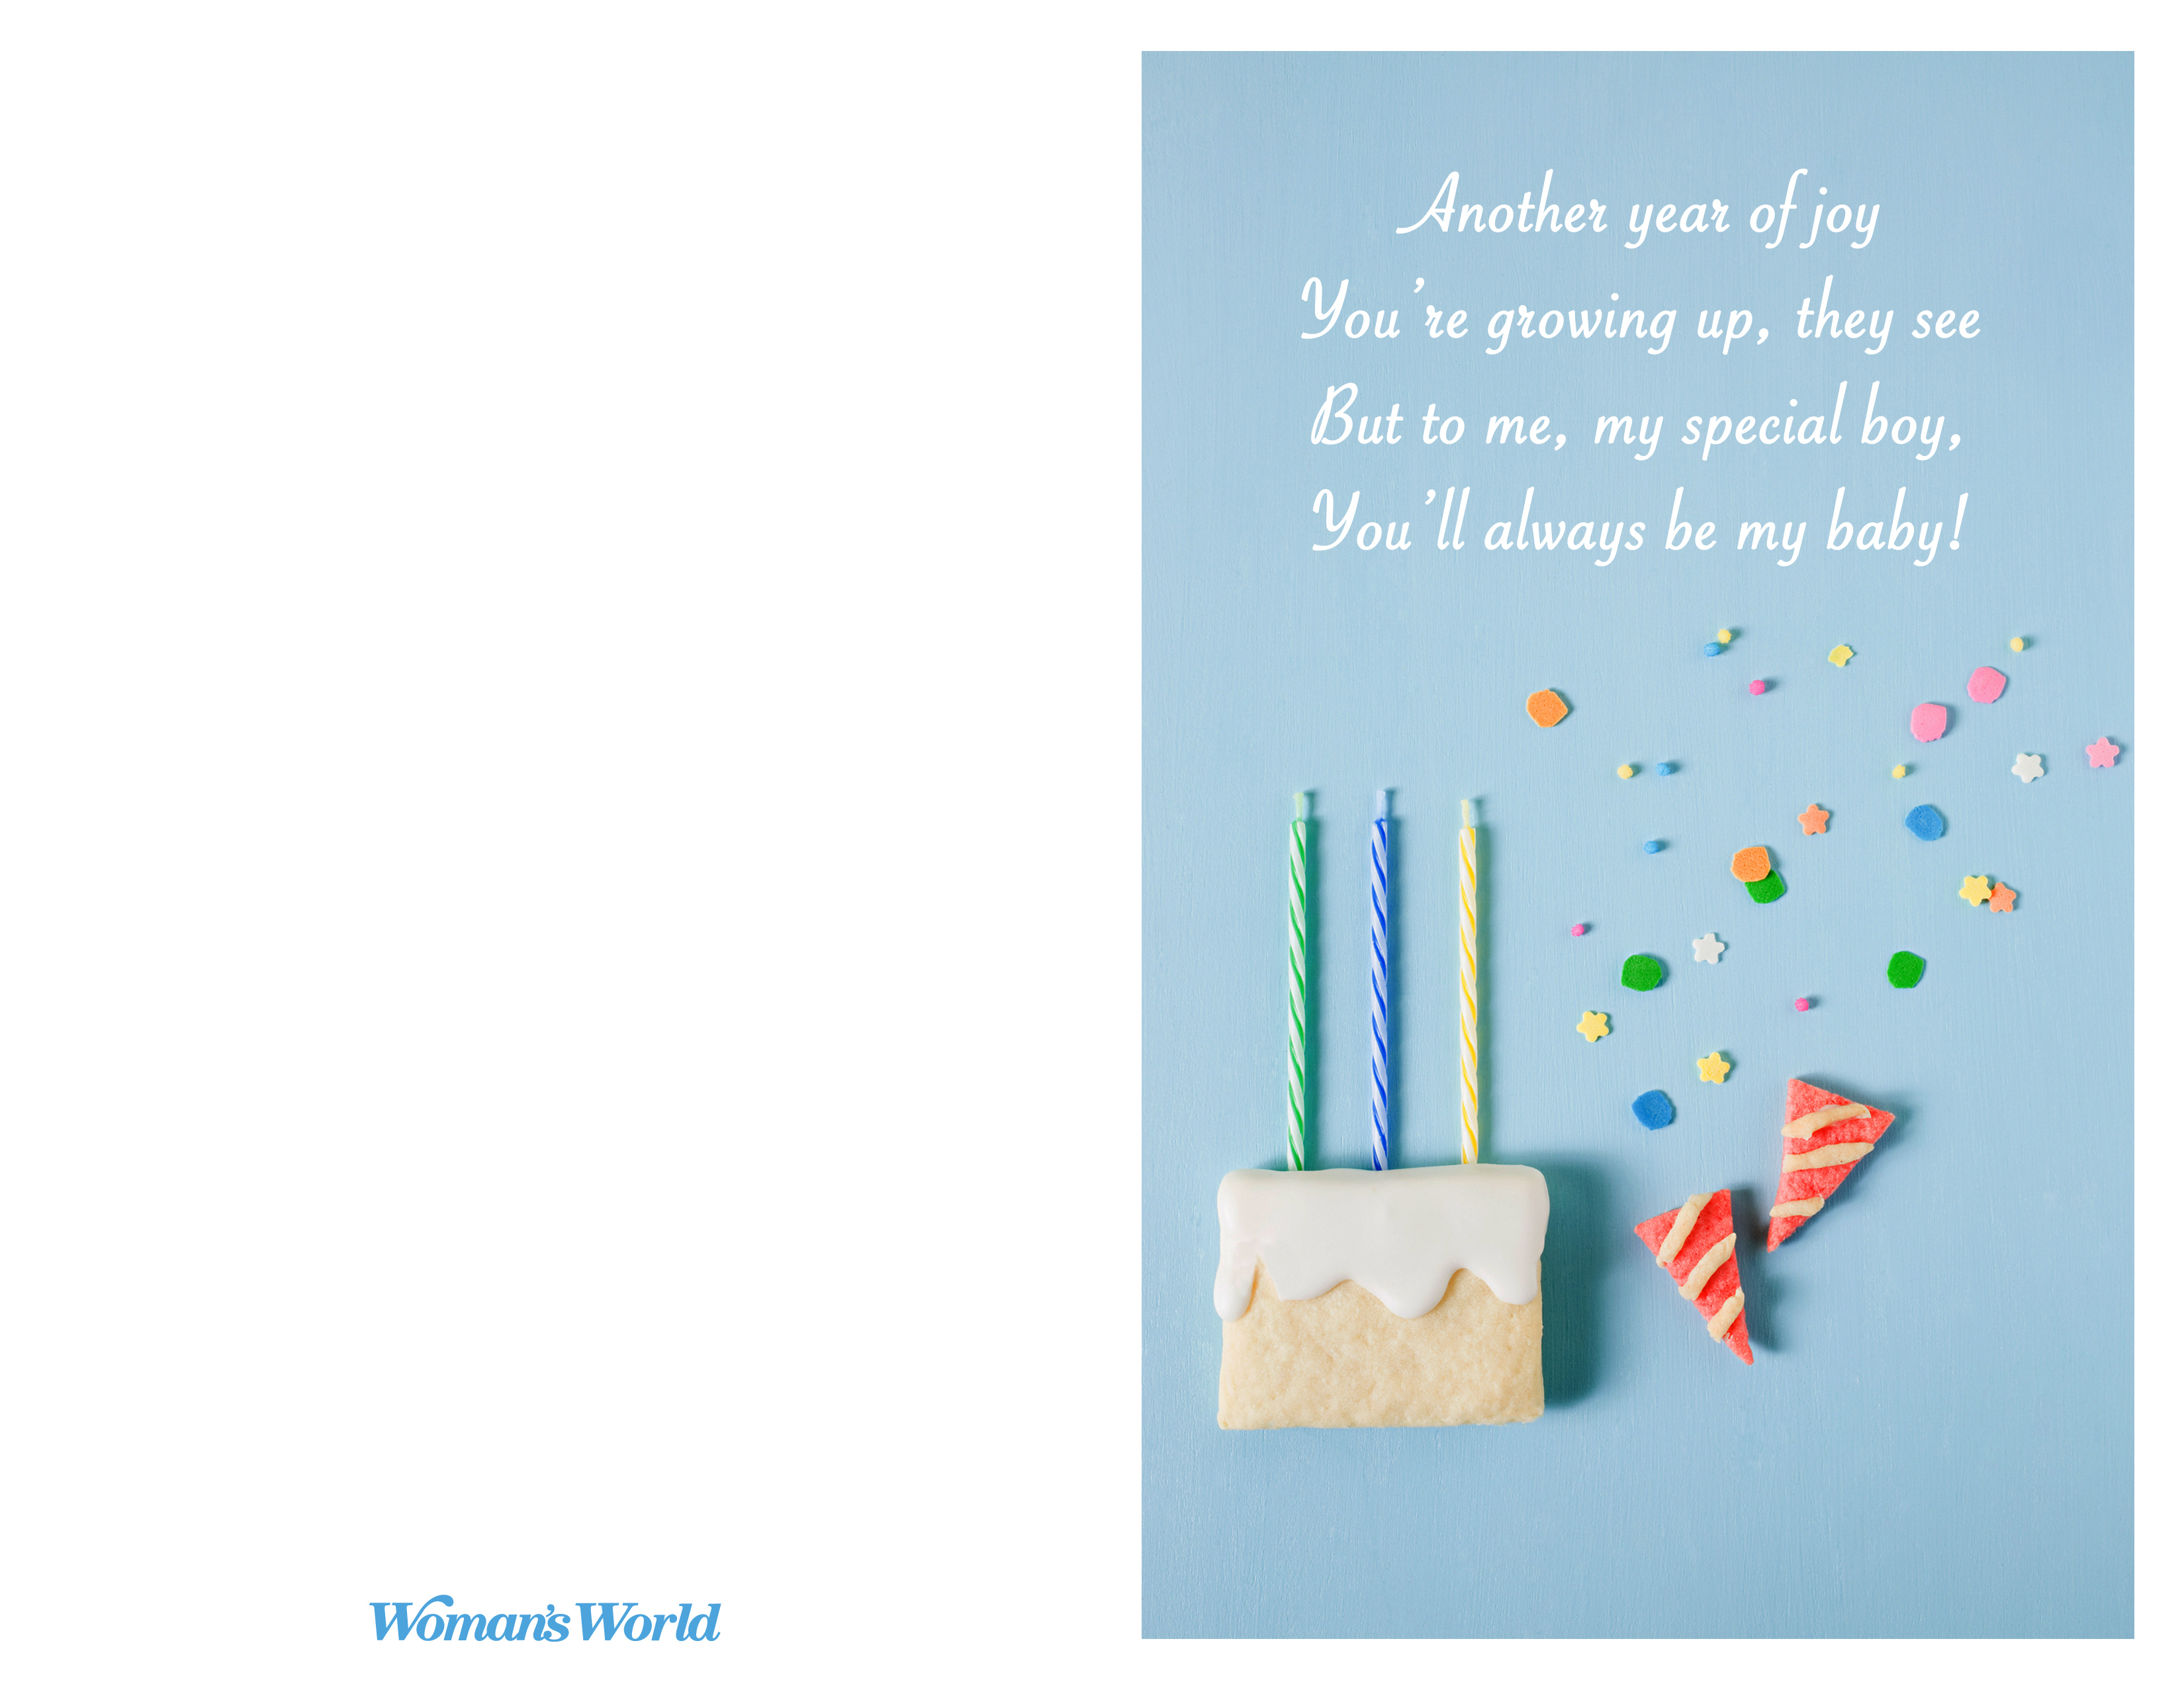 Happy Birthday Son Poems From Mom To Make His Day Special - Woman's - Free Printable Birthday Cards For Mom From Son